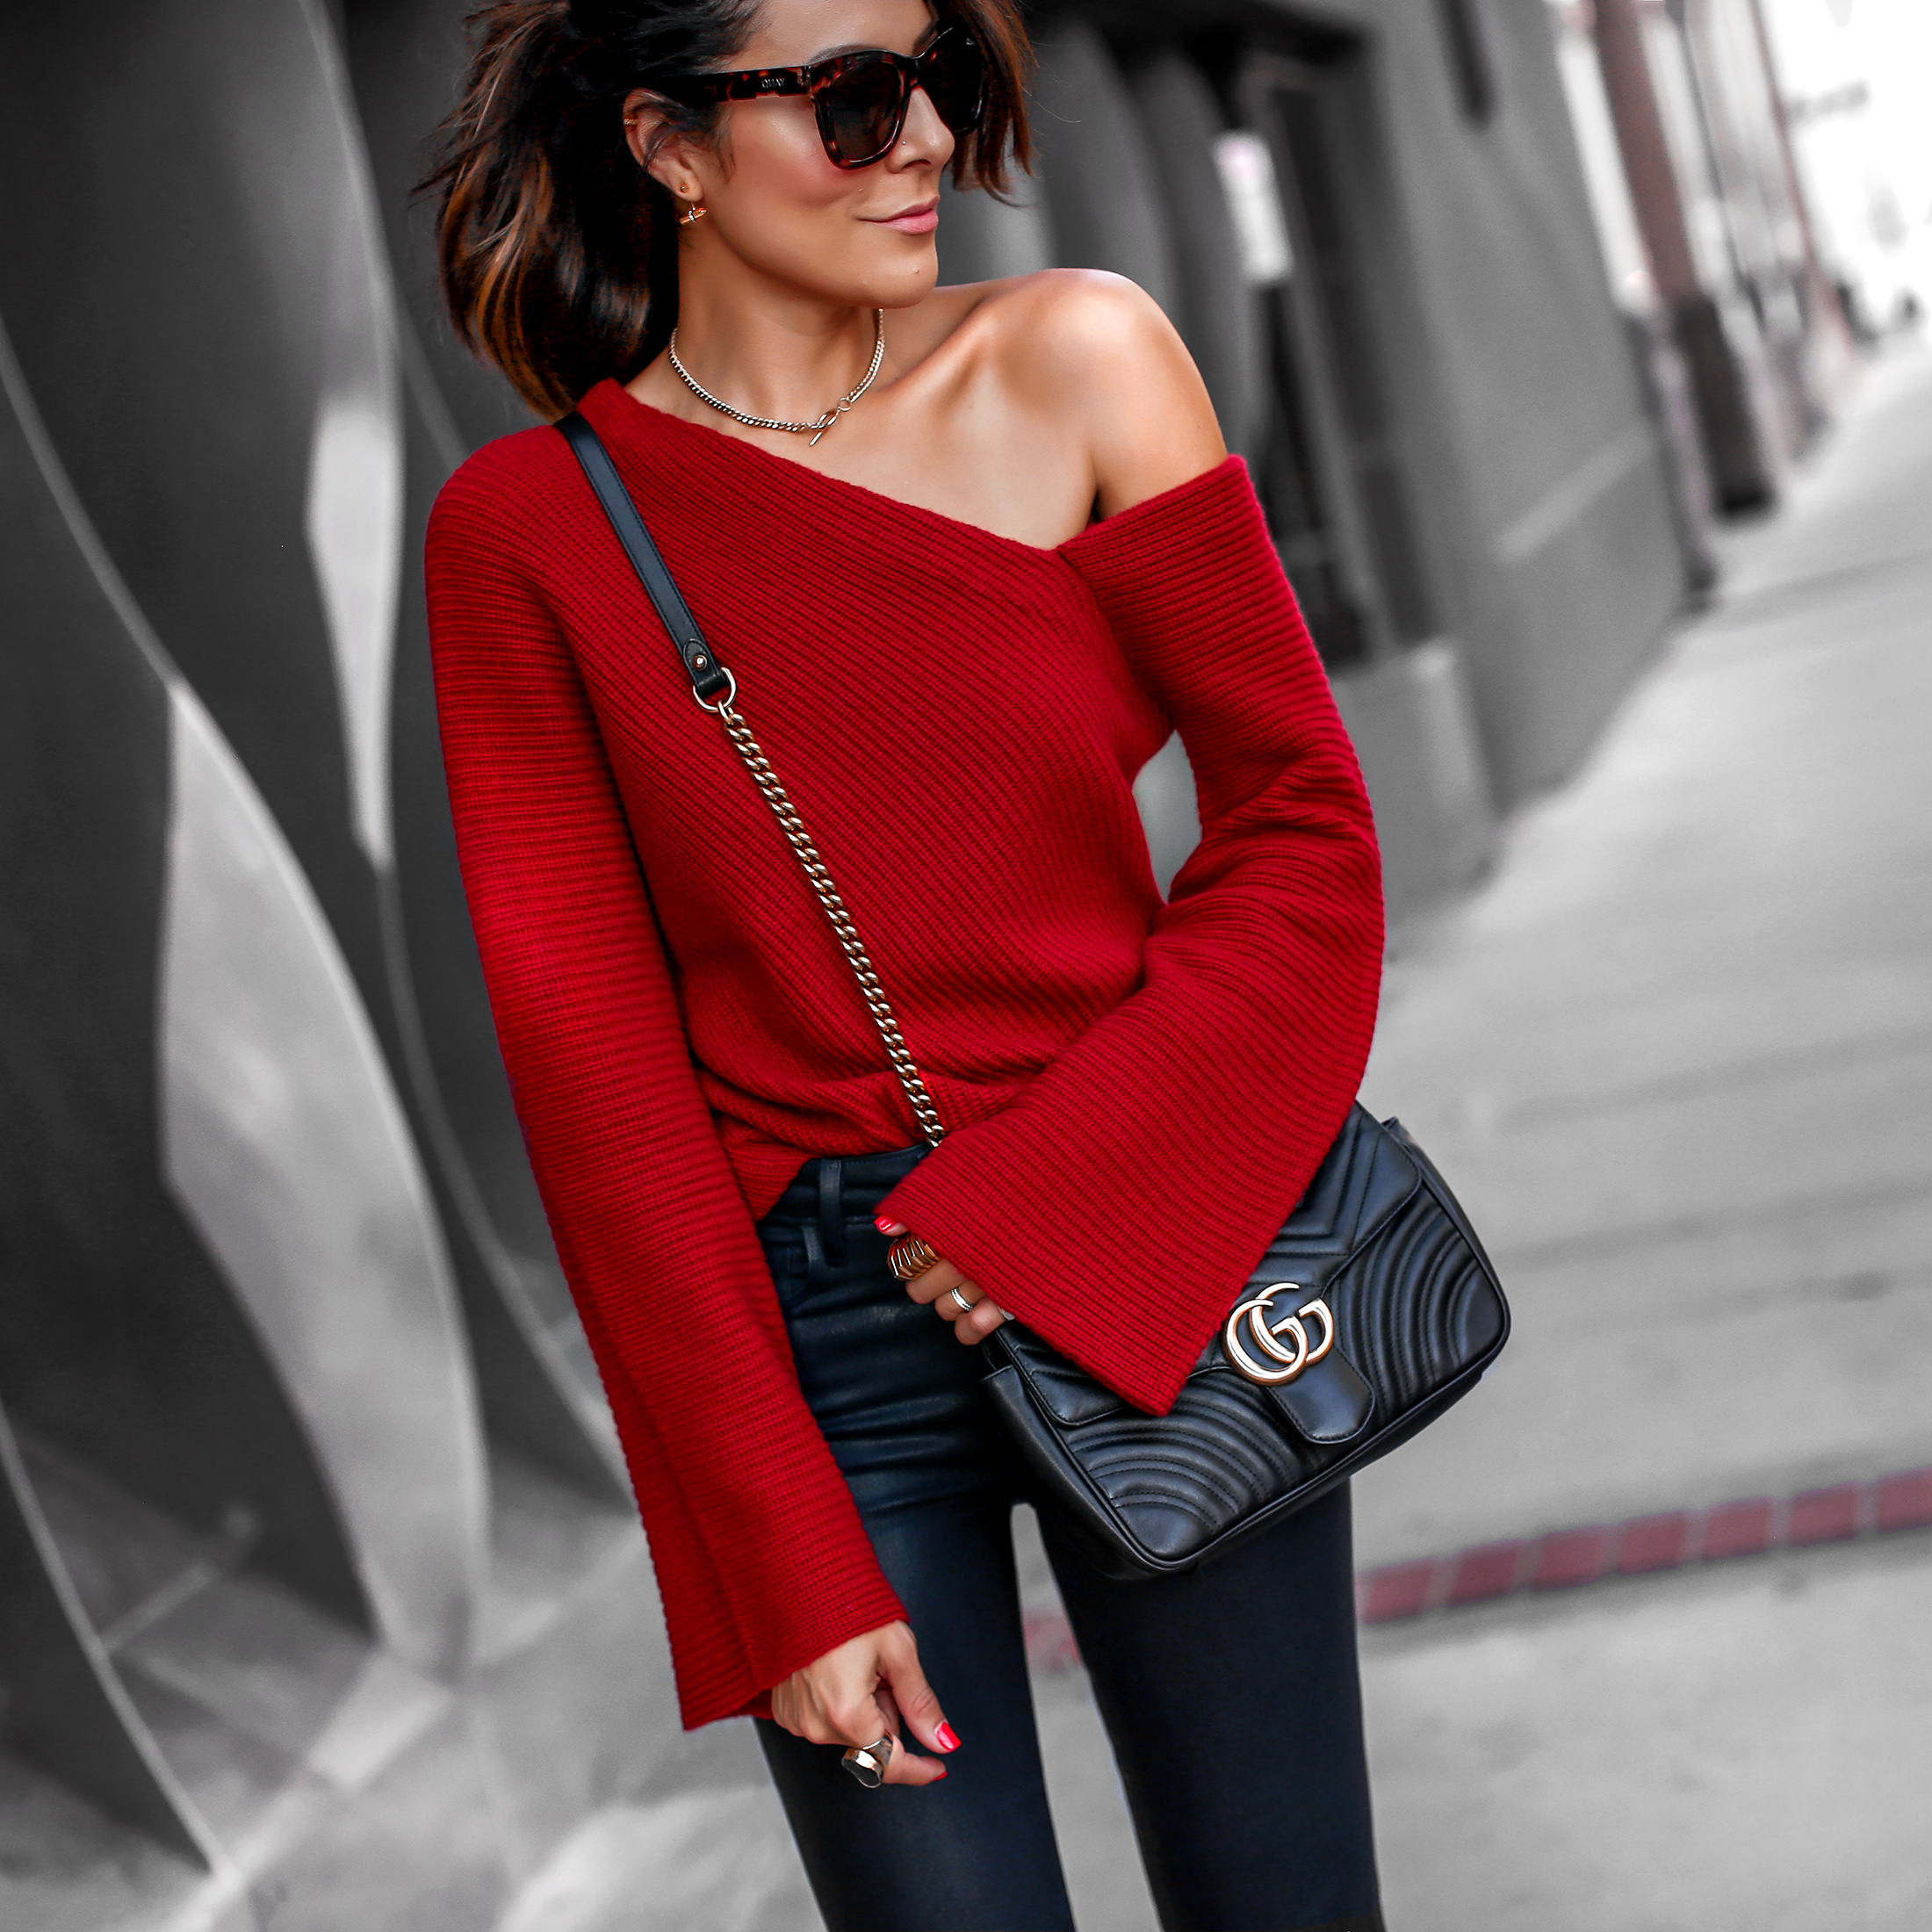 A.L.C Asymmetric Sweater L'Agence Skinny jeans Gucci Bag Nordstrom Anniversary Sale.jpg